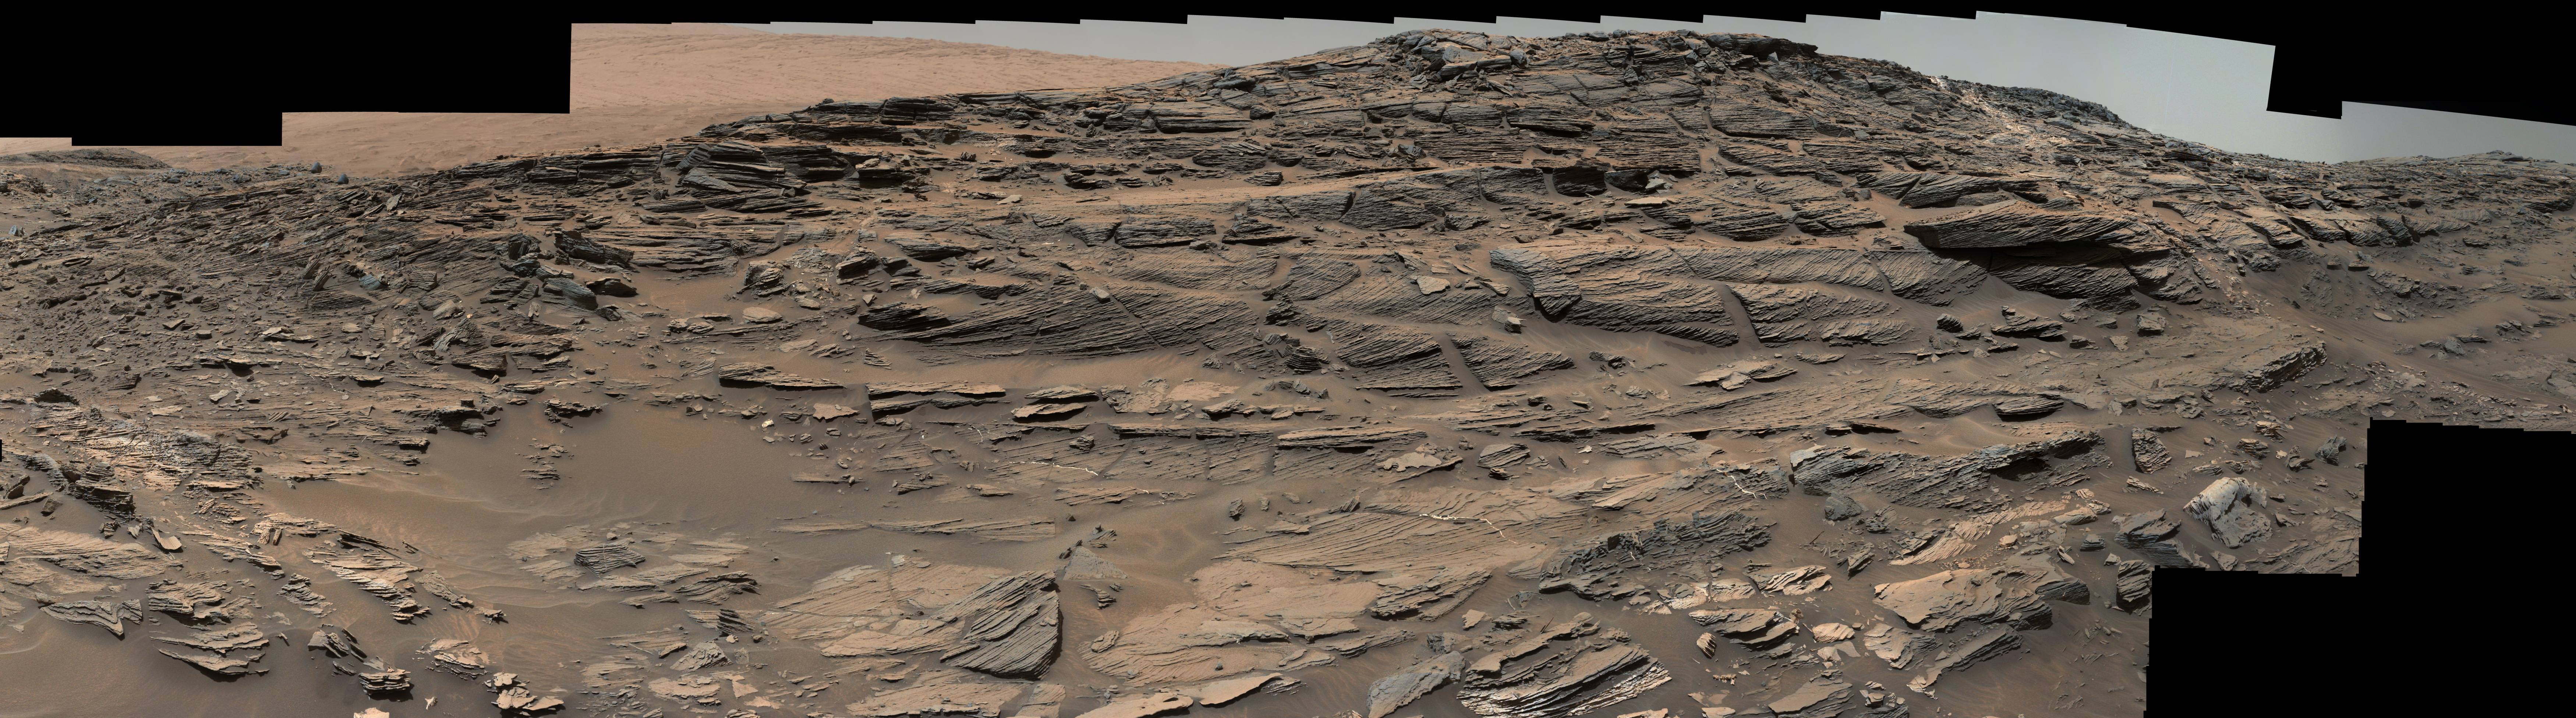 Large-scale crossbedding in the sandstone of this ridge on a lower slope of Mars' Mount Sharp is typical of windblown sand dunes that have petrified. NASA's Curiosity Mars rover used its Mastcam to capture this vista on Aug. 27, 2015. Similarly textured sandstone is common in the U.S. Southwest.  Credits: NASA/JPL-Caltech/MSSS